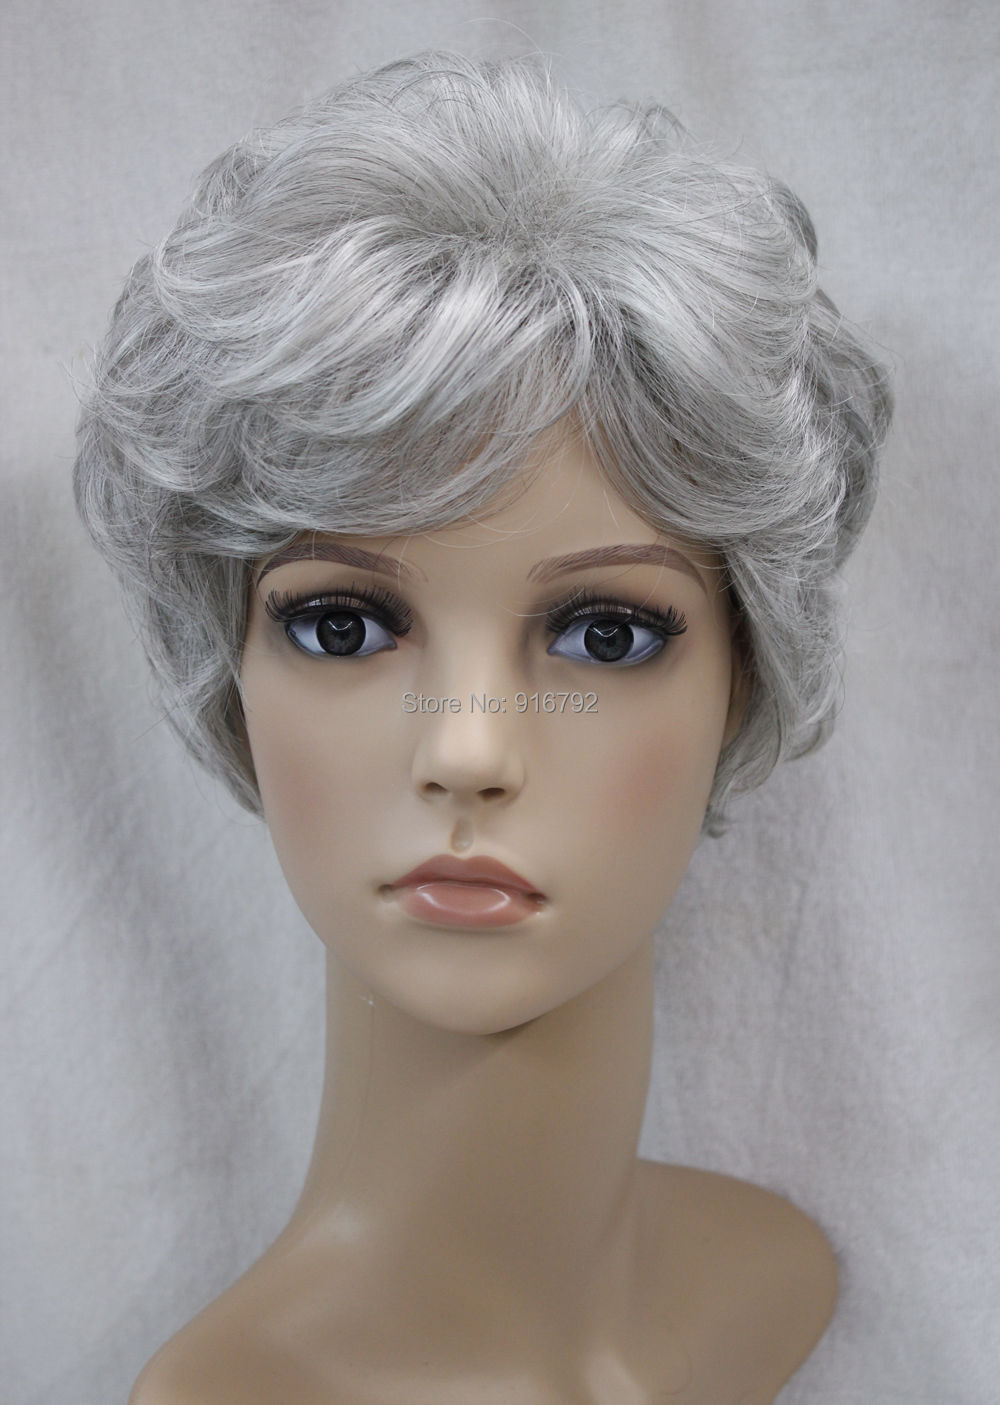 Wholesale YF&amp;Q&gt;&gt;White + gray Mix Short Curly Middle-aged / Older Women Female Hair Wig<br><br>Aliexpress